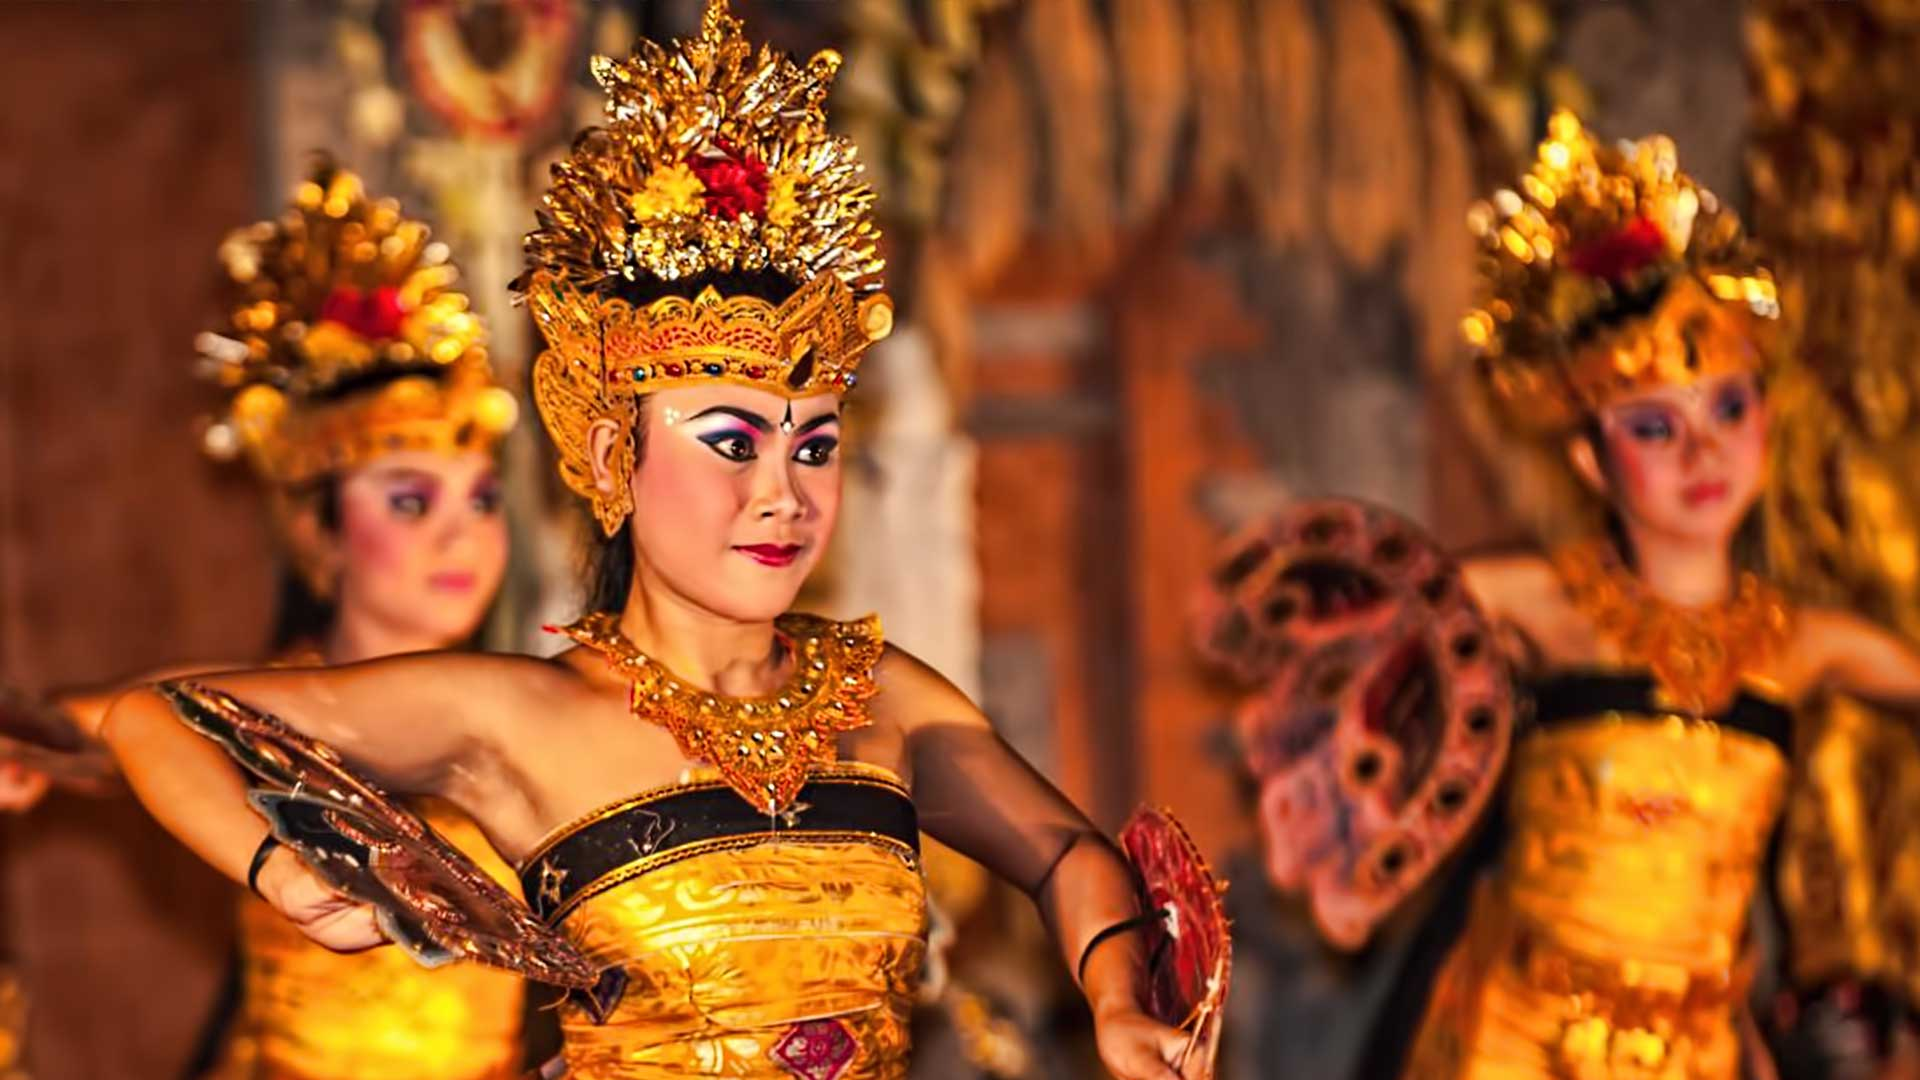 Immerse Yourself Into The Sacred Balinese Arts